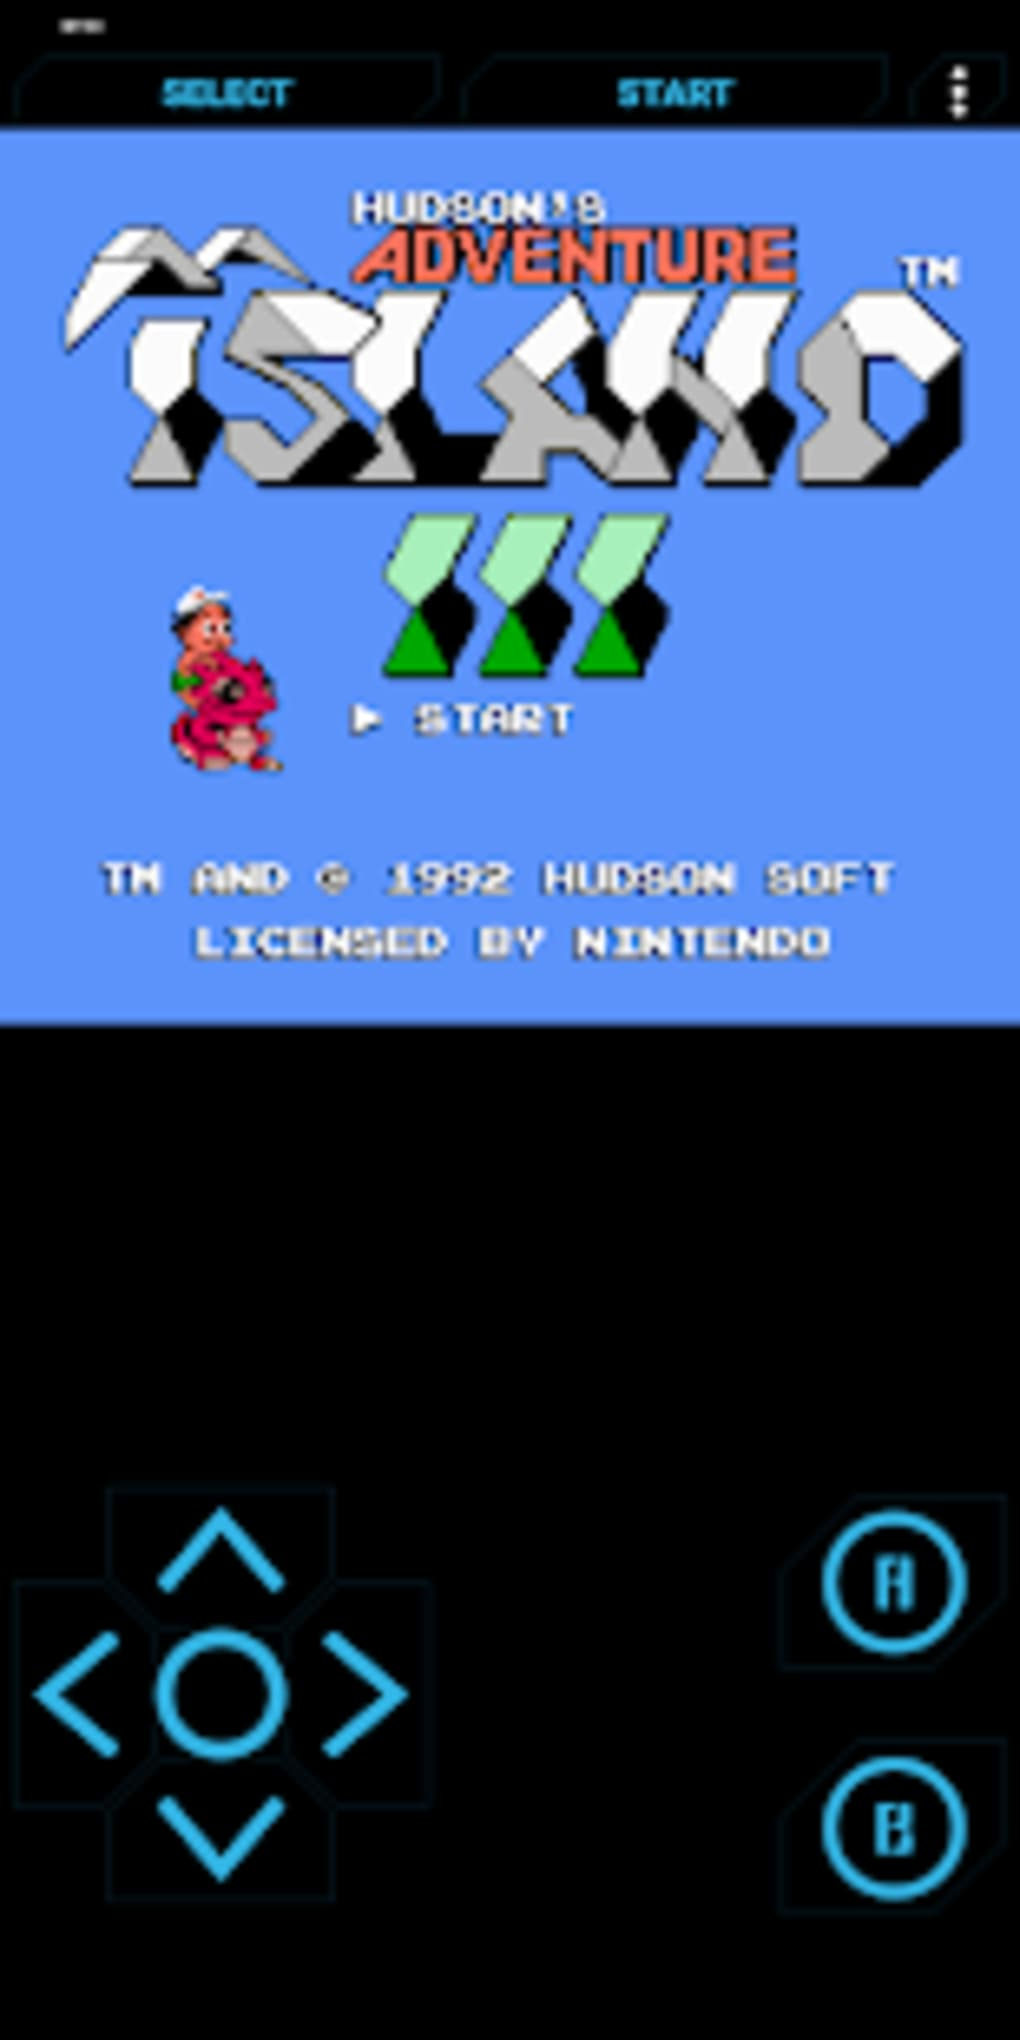 Happy NES - NES Emulator 100 in 1 for Android - Download